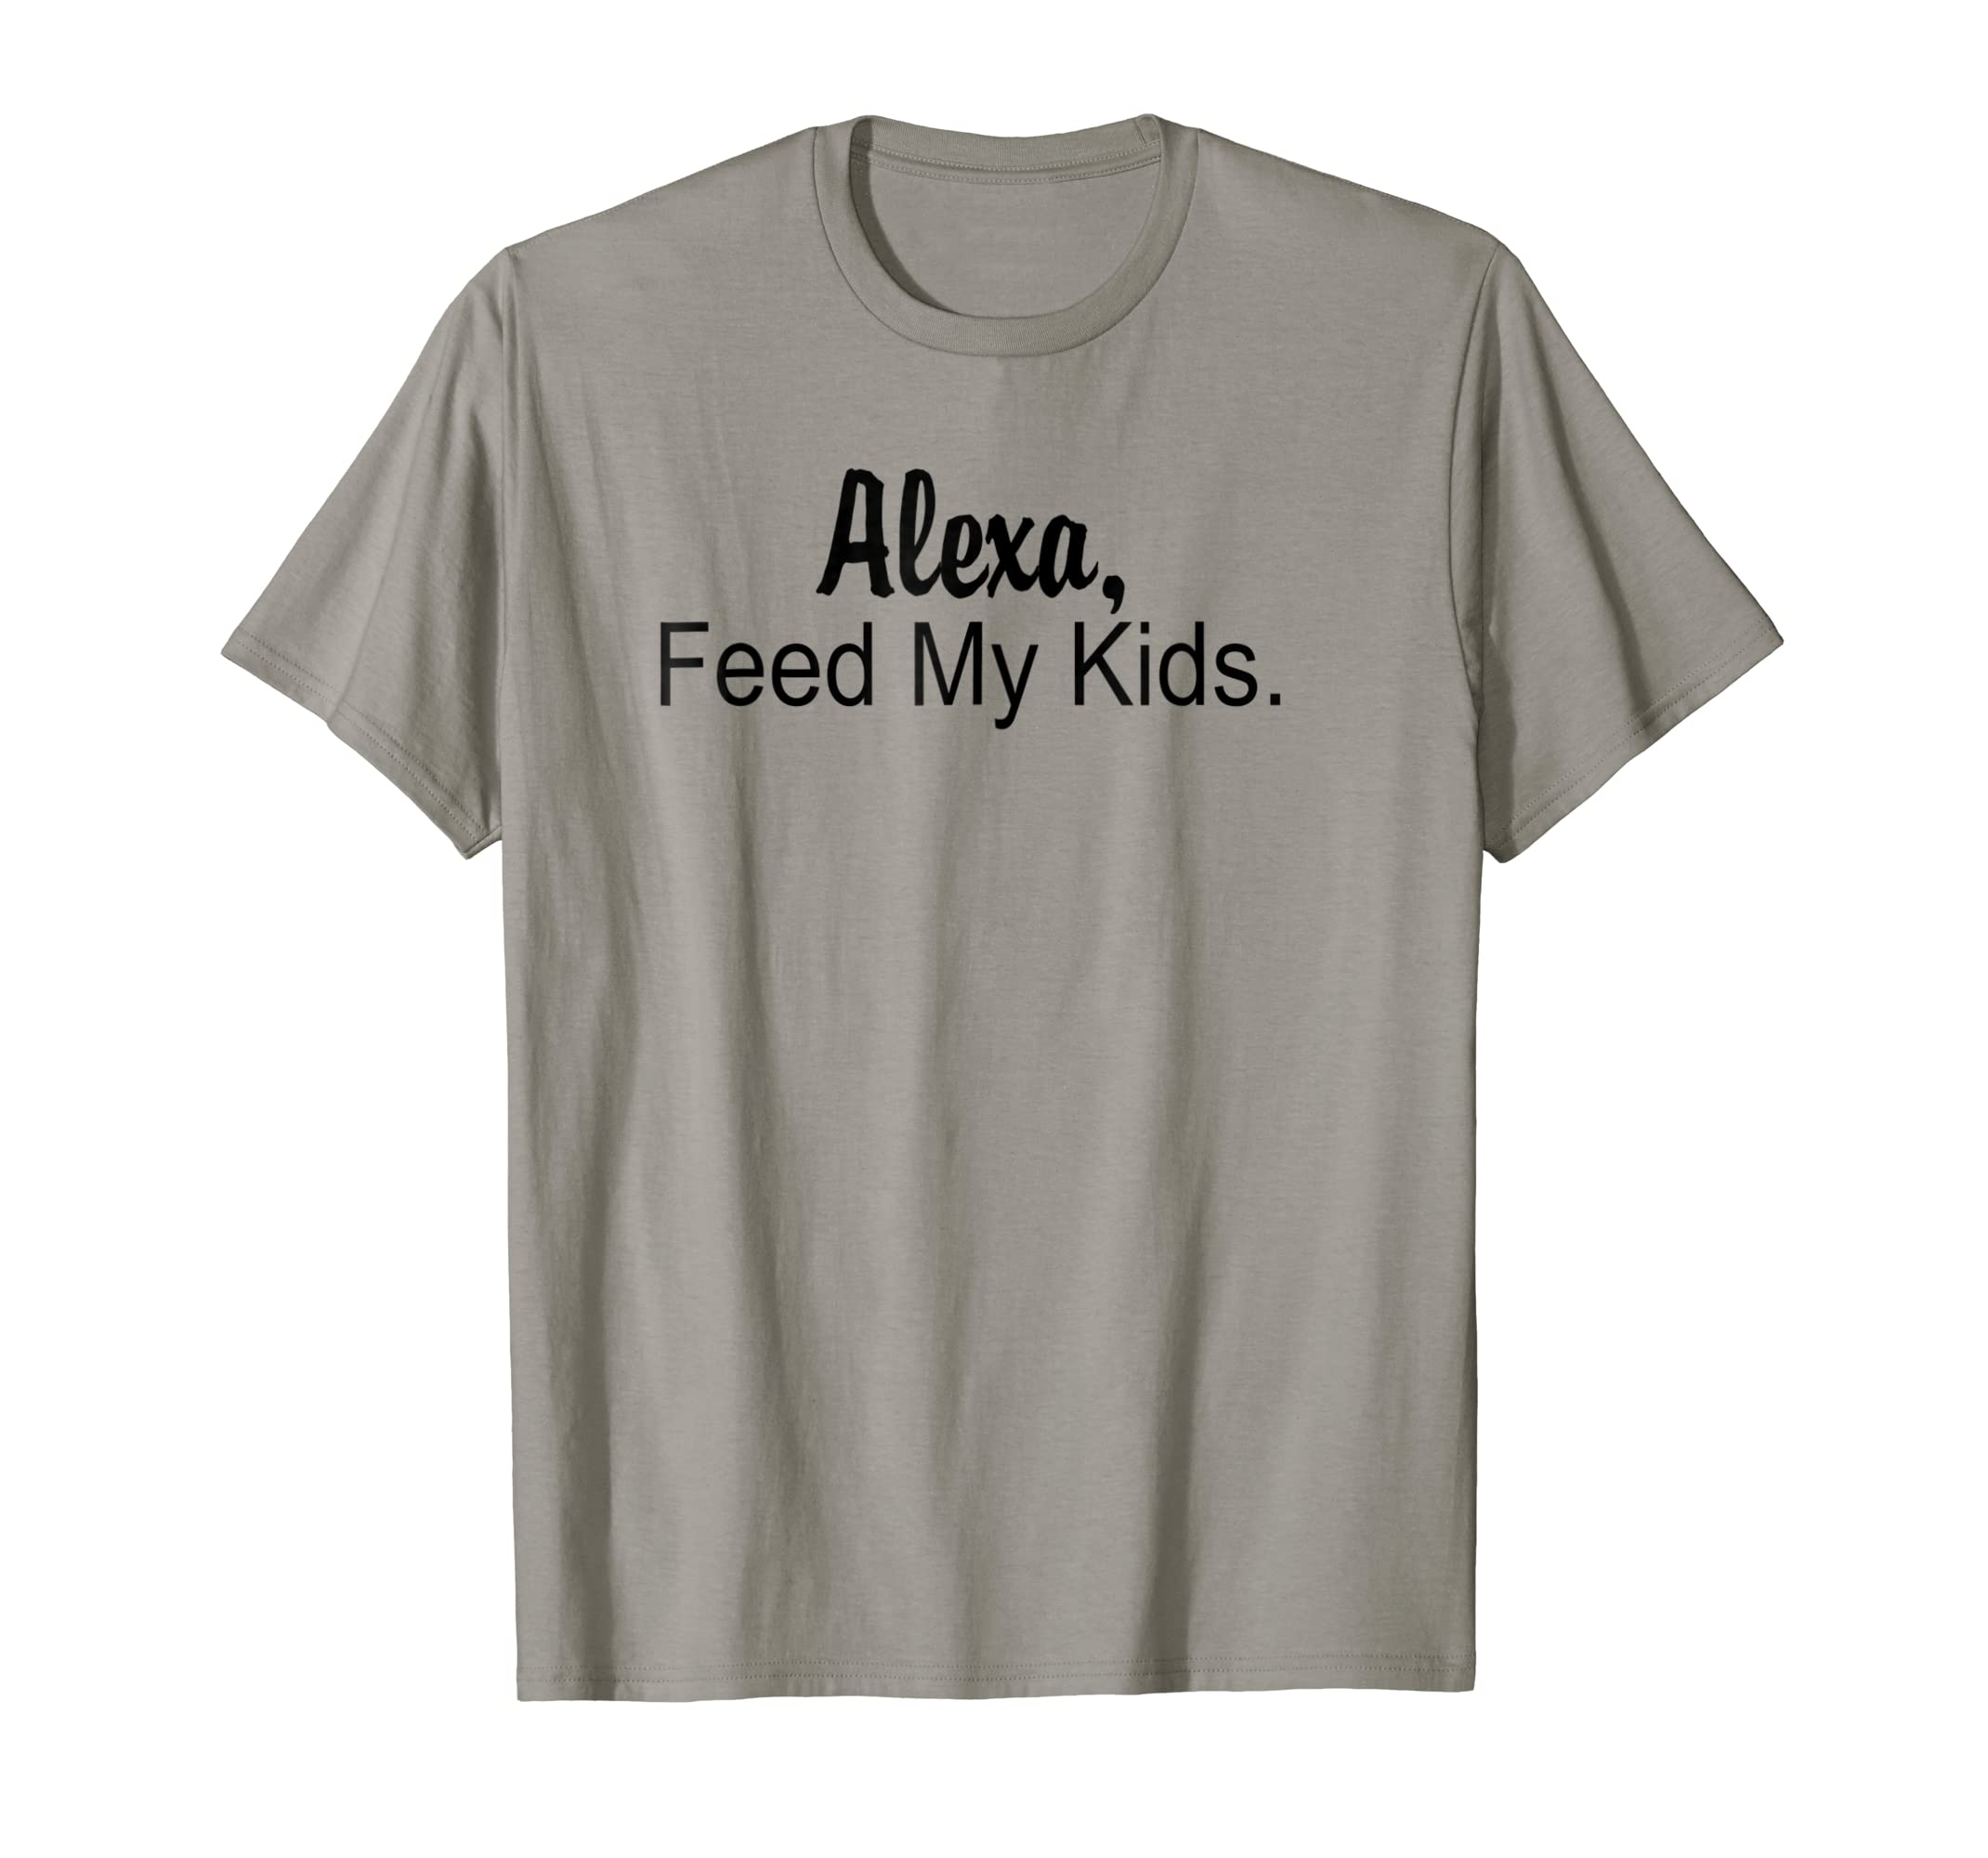 fac99924d Amazon.com: Alexa Feed My Kids Funny T-shirt for Mom and Dad: Clothing